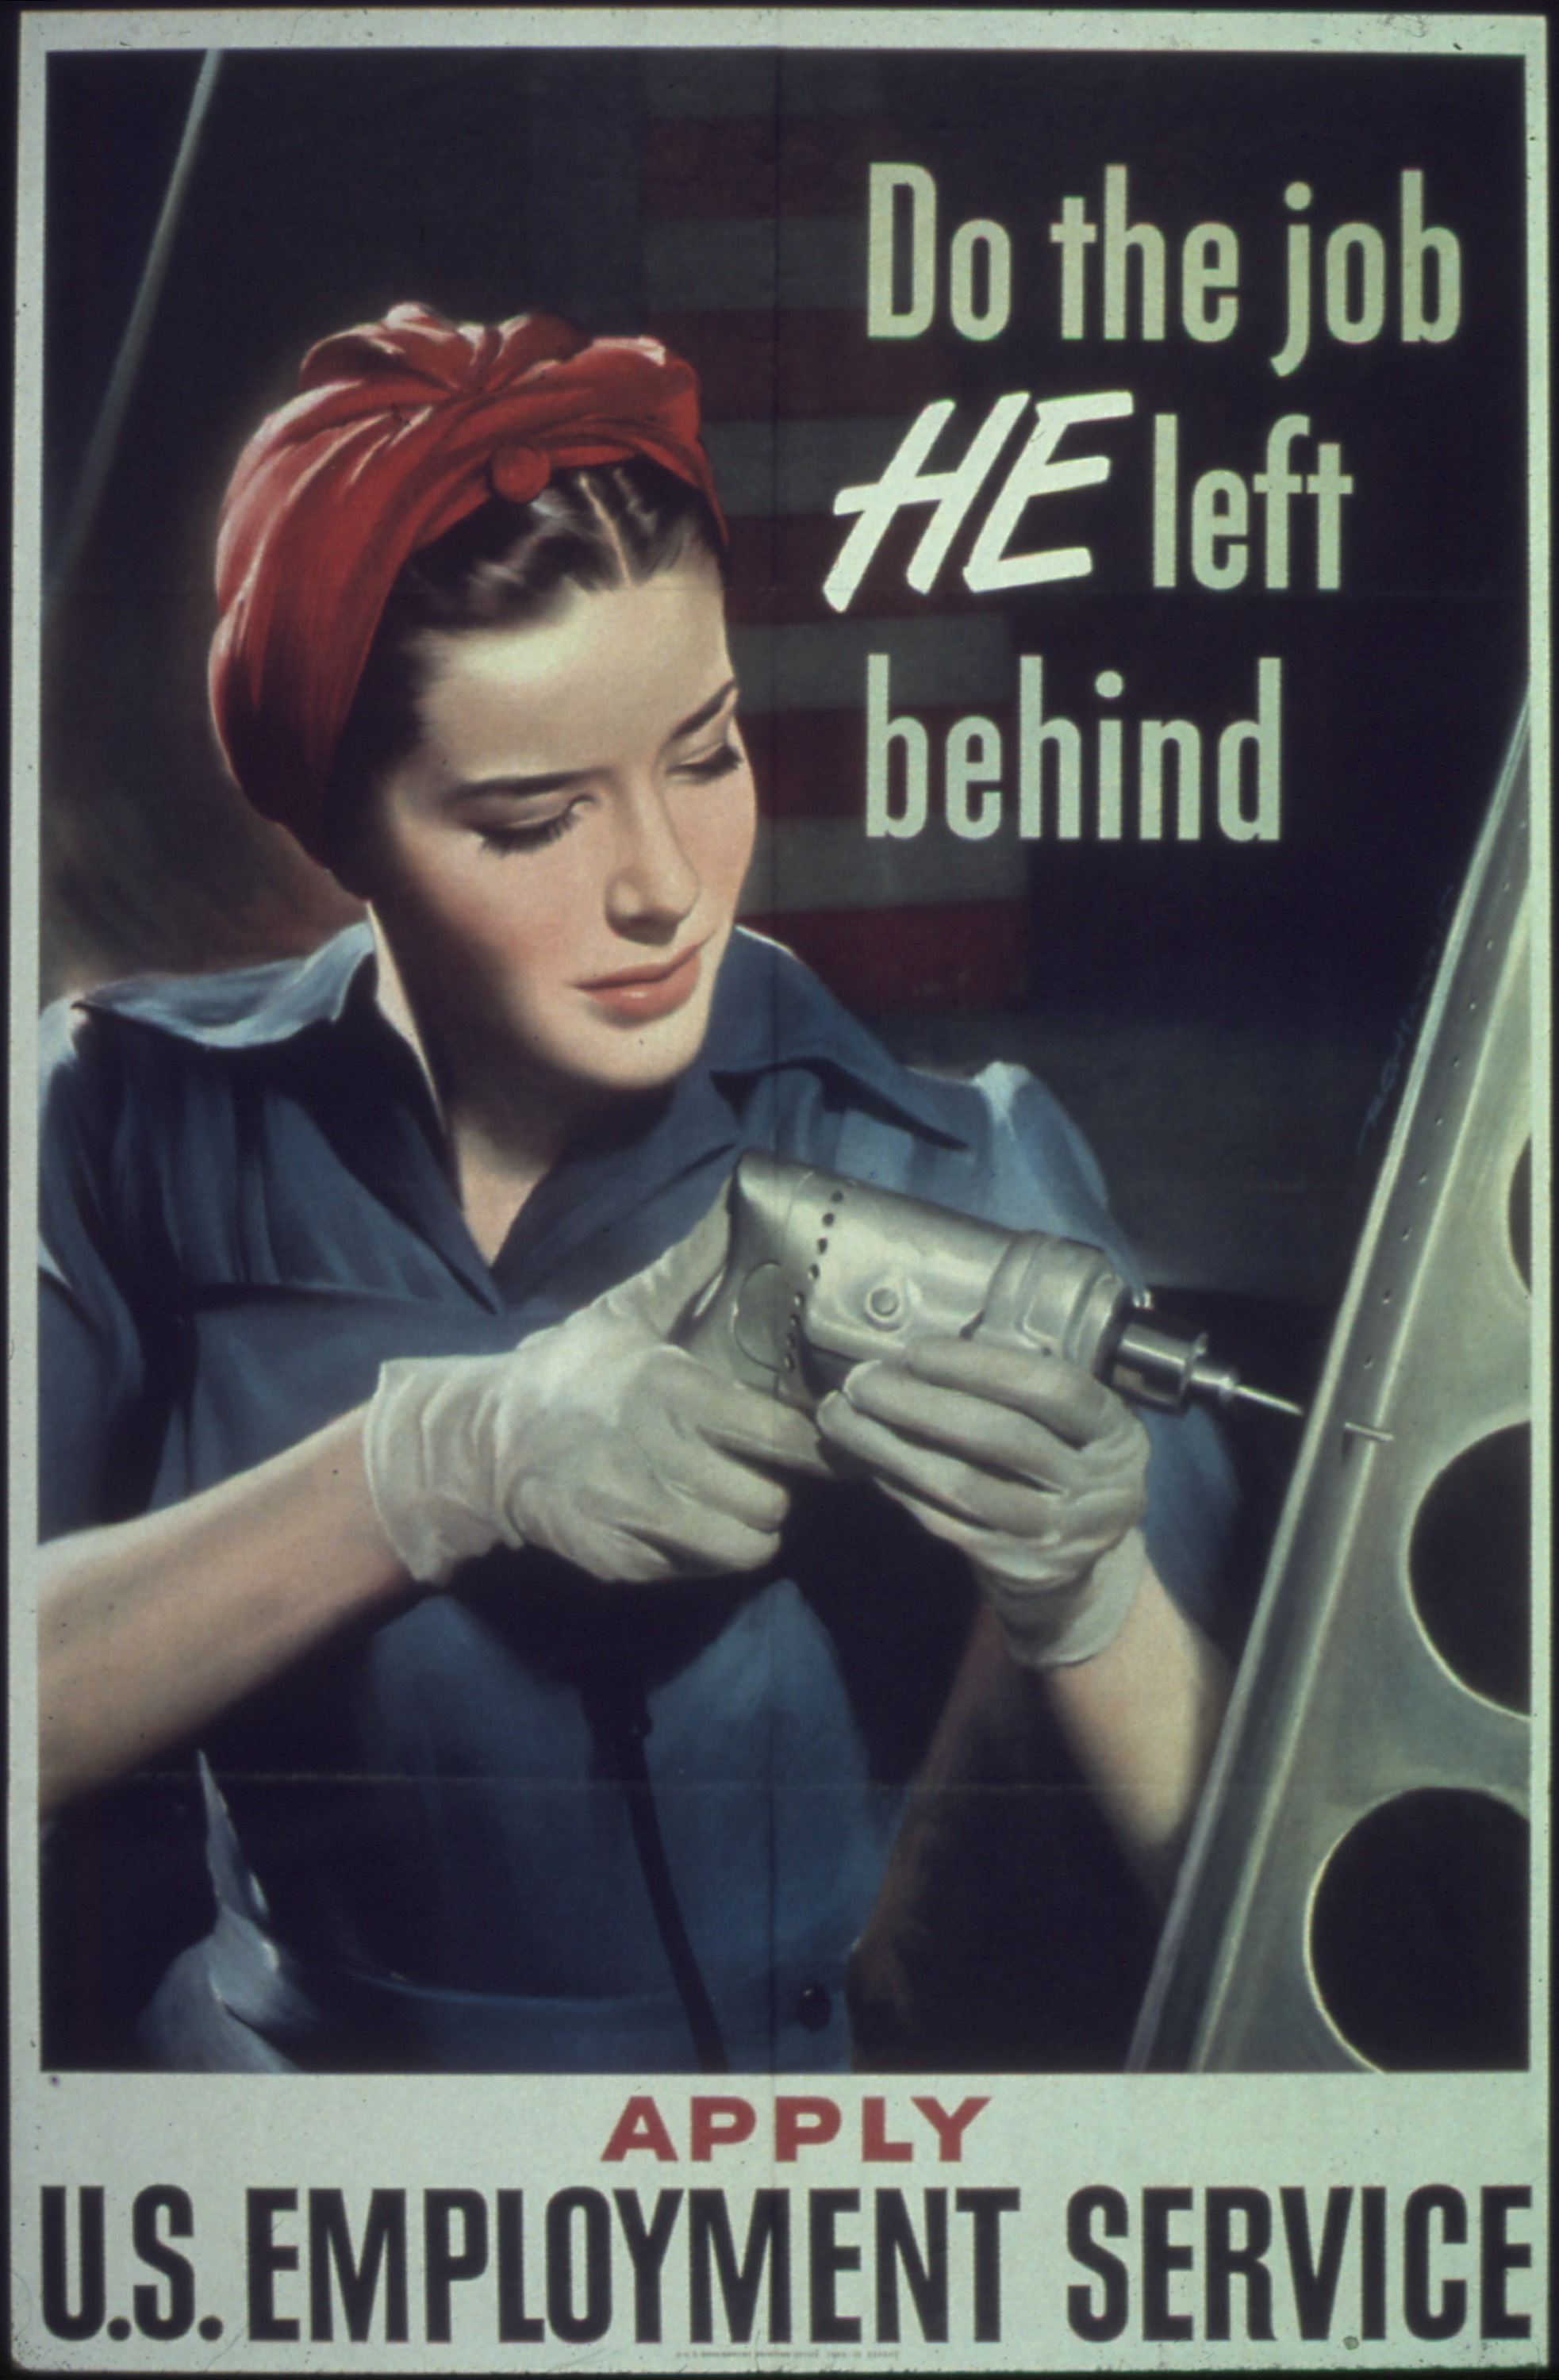 Hagley ID, Box/folder number, Women at work World War II posters (Accession 1994.263.1), Audiovisual Collections and Digital Initiatives Department, Hagley Museum and Library, Wilmington, DE 19807